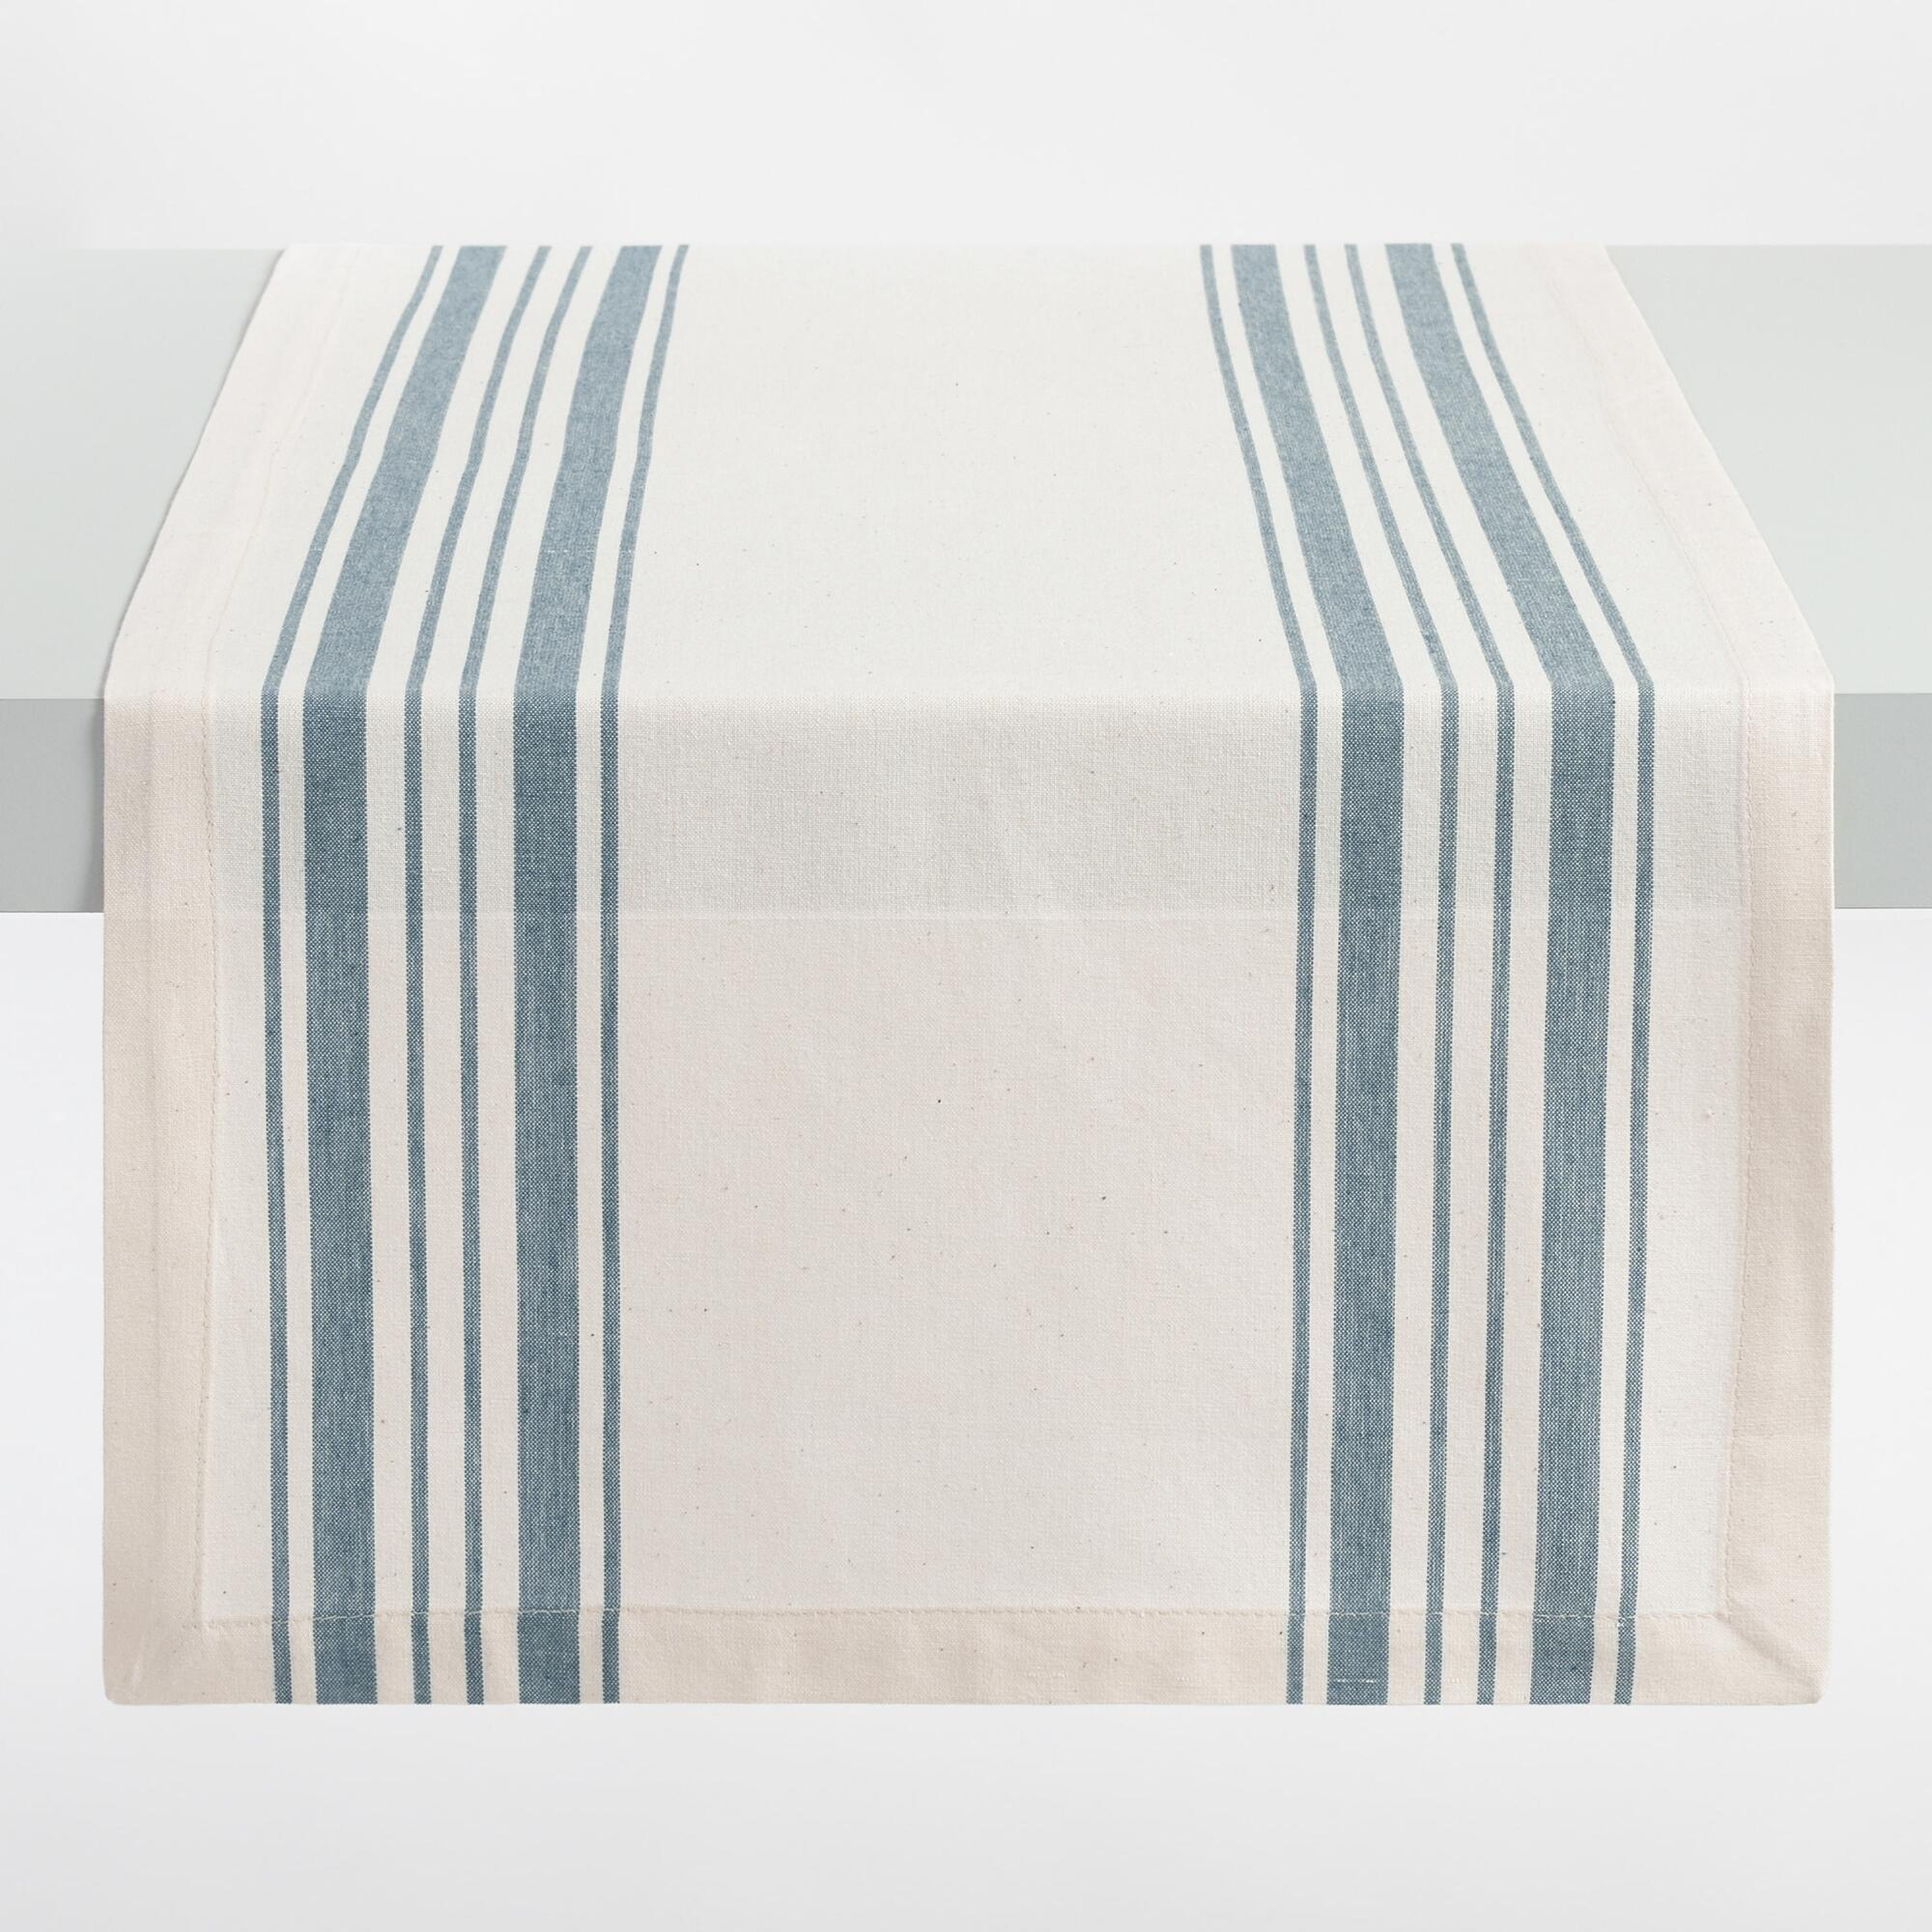 Bamboo black table runner 72 inches checkered kitchen linen dining - Blue Villa Stripe Table Runner